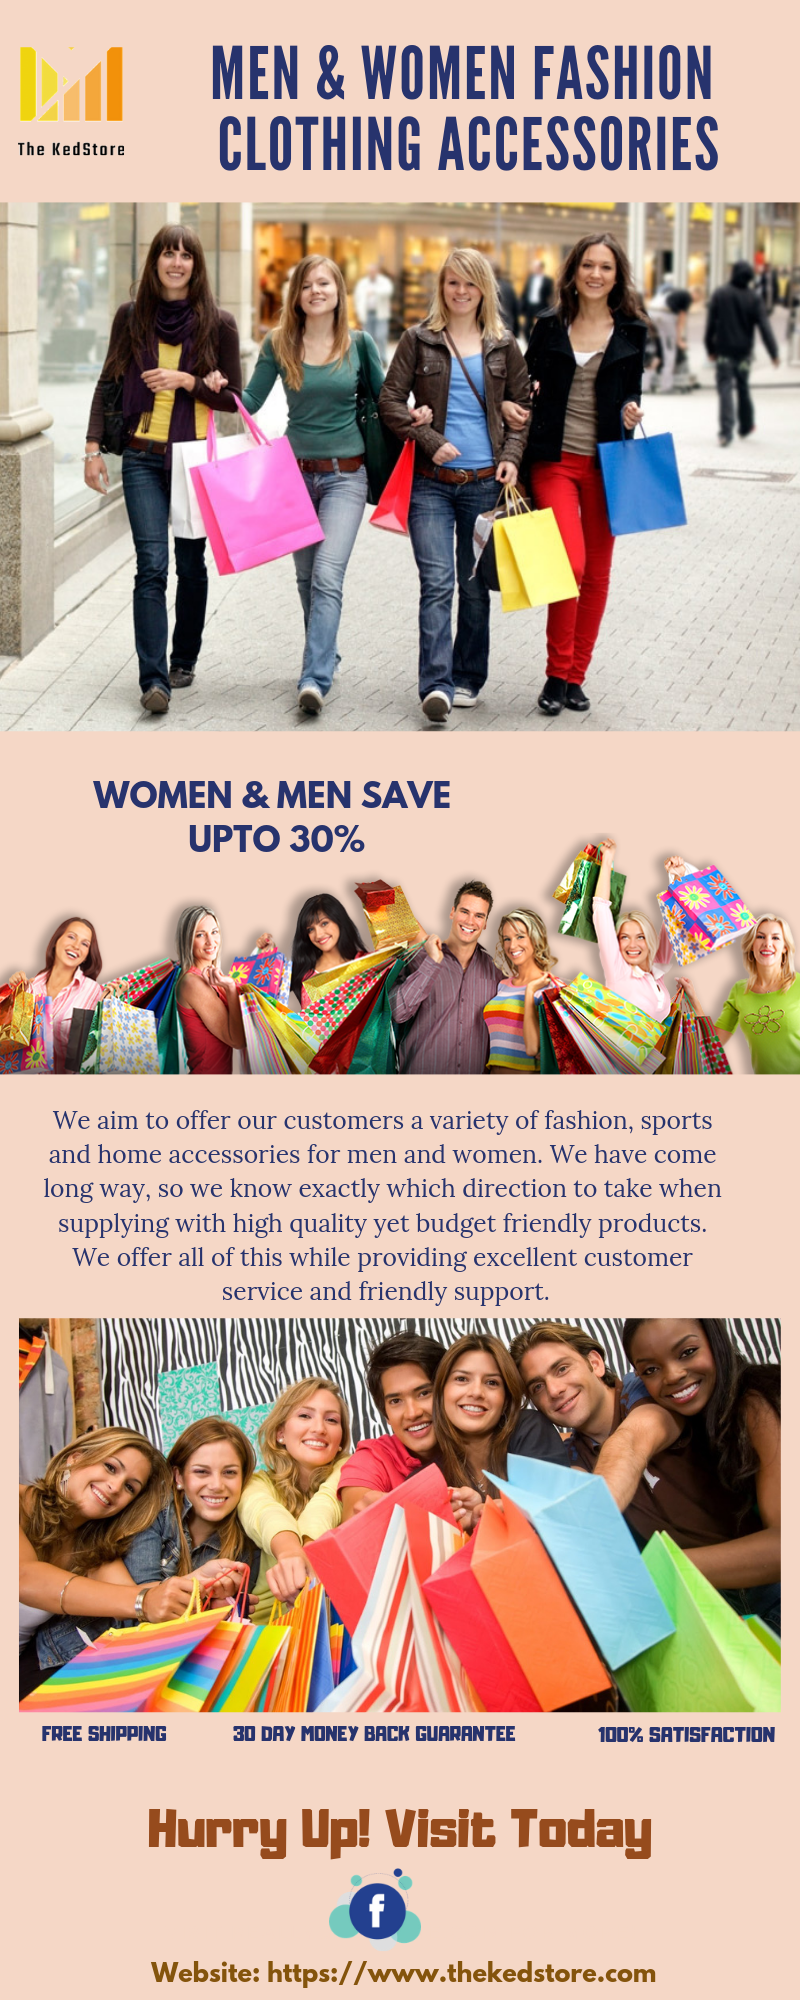 men & women fashion clothing access.png